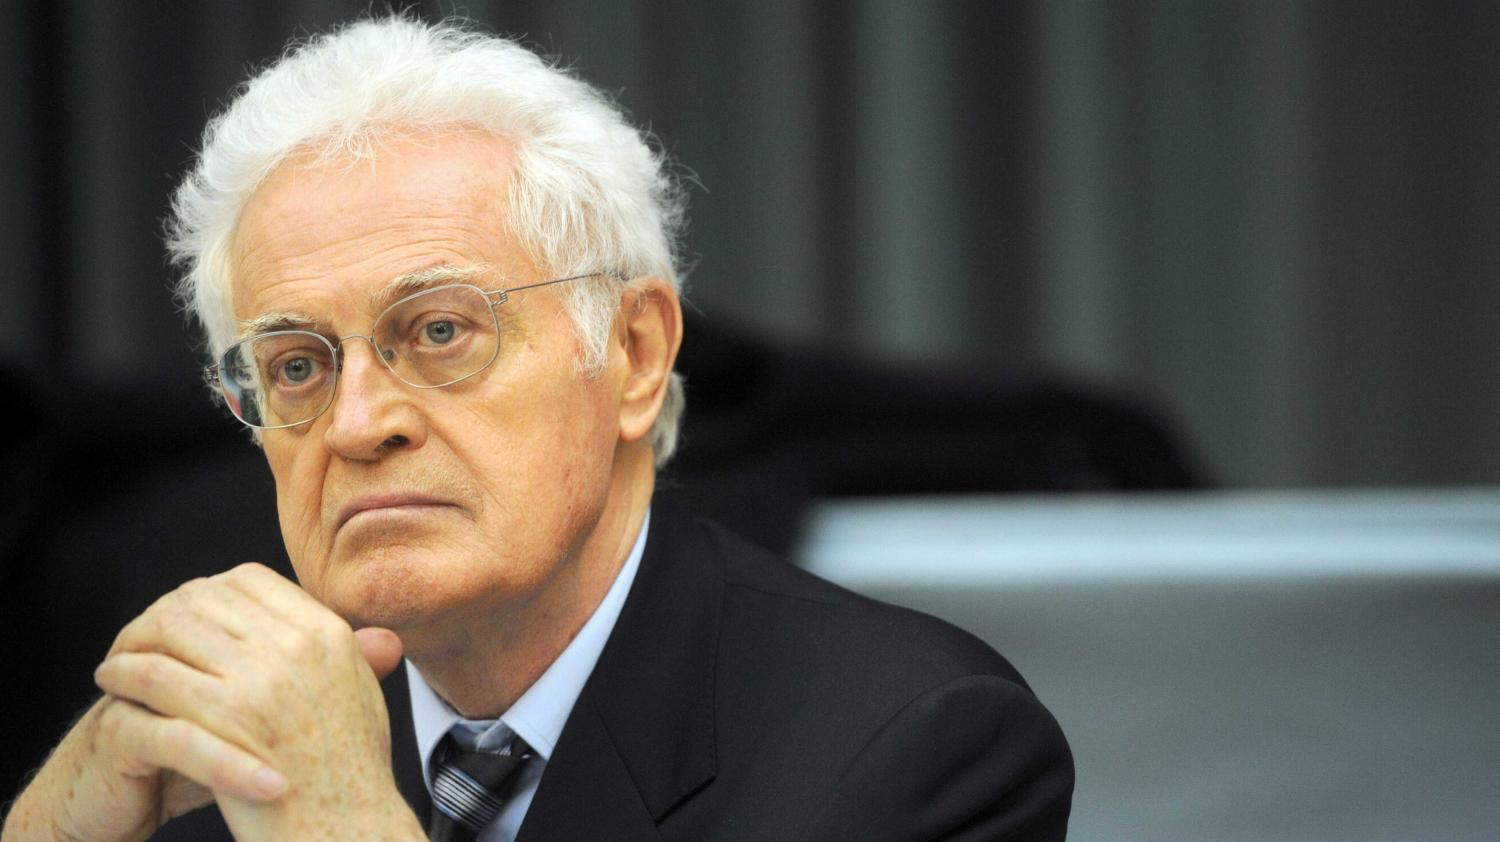 Lionel Jospin va causer NBA sur beIN Sports